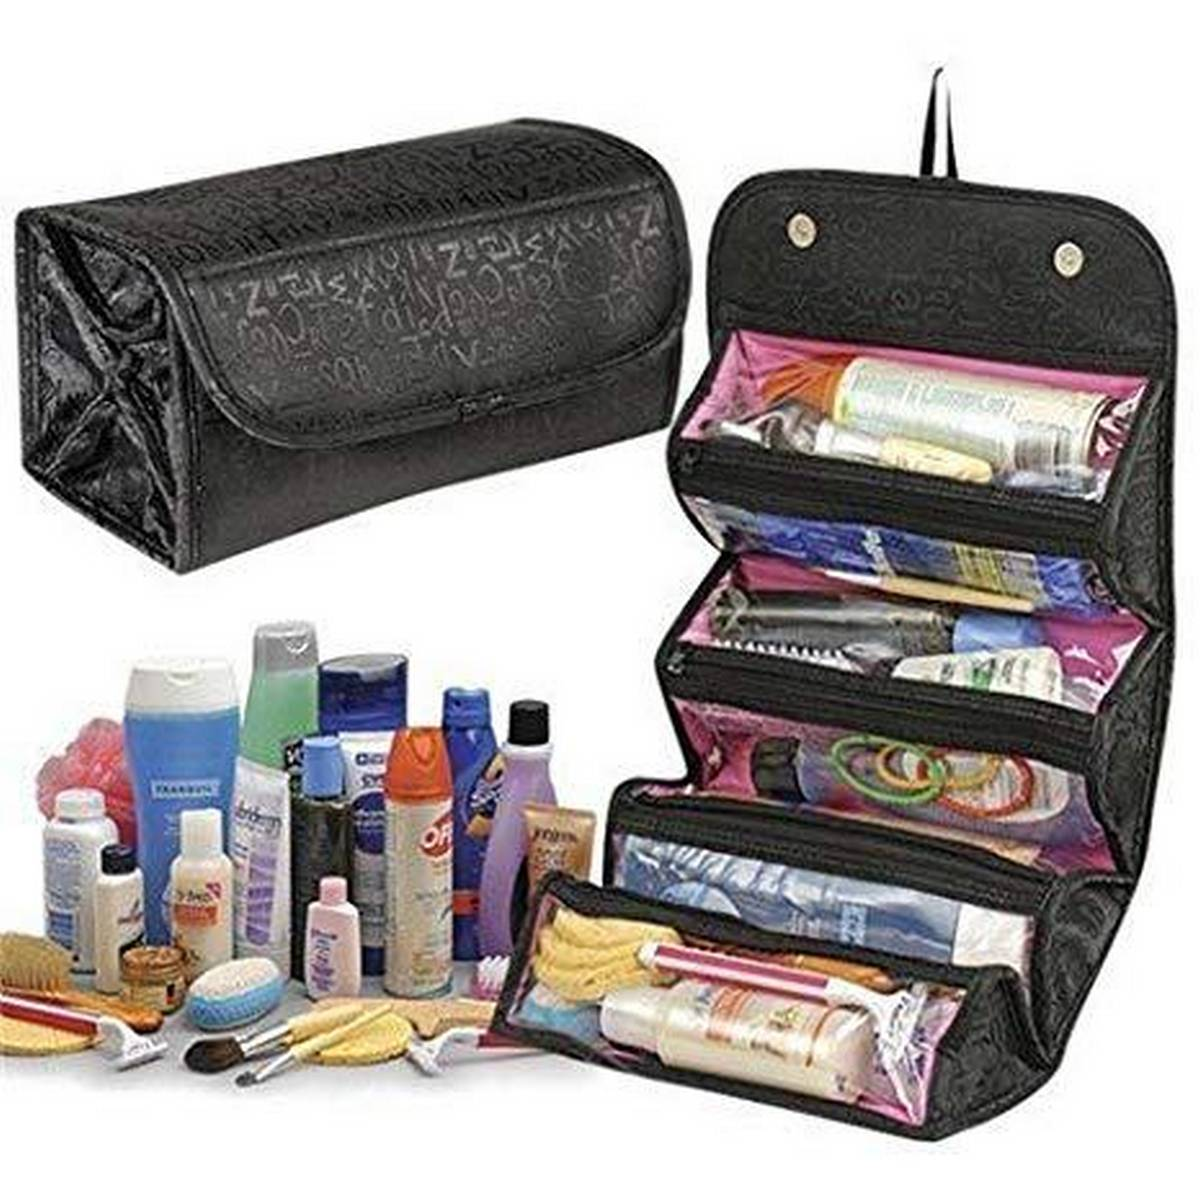 4-Layer Roll-up Travel Cosmetic Makeup Storage Bag Hanging Toiletry Organizer Foldable Large Capacity Bathroom Wash Bag In Bag Women Portable Bath Shower Case Holder Pouch with Hanging Loop